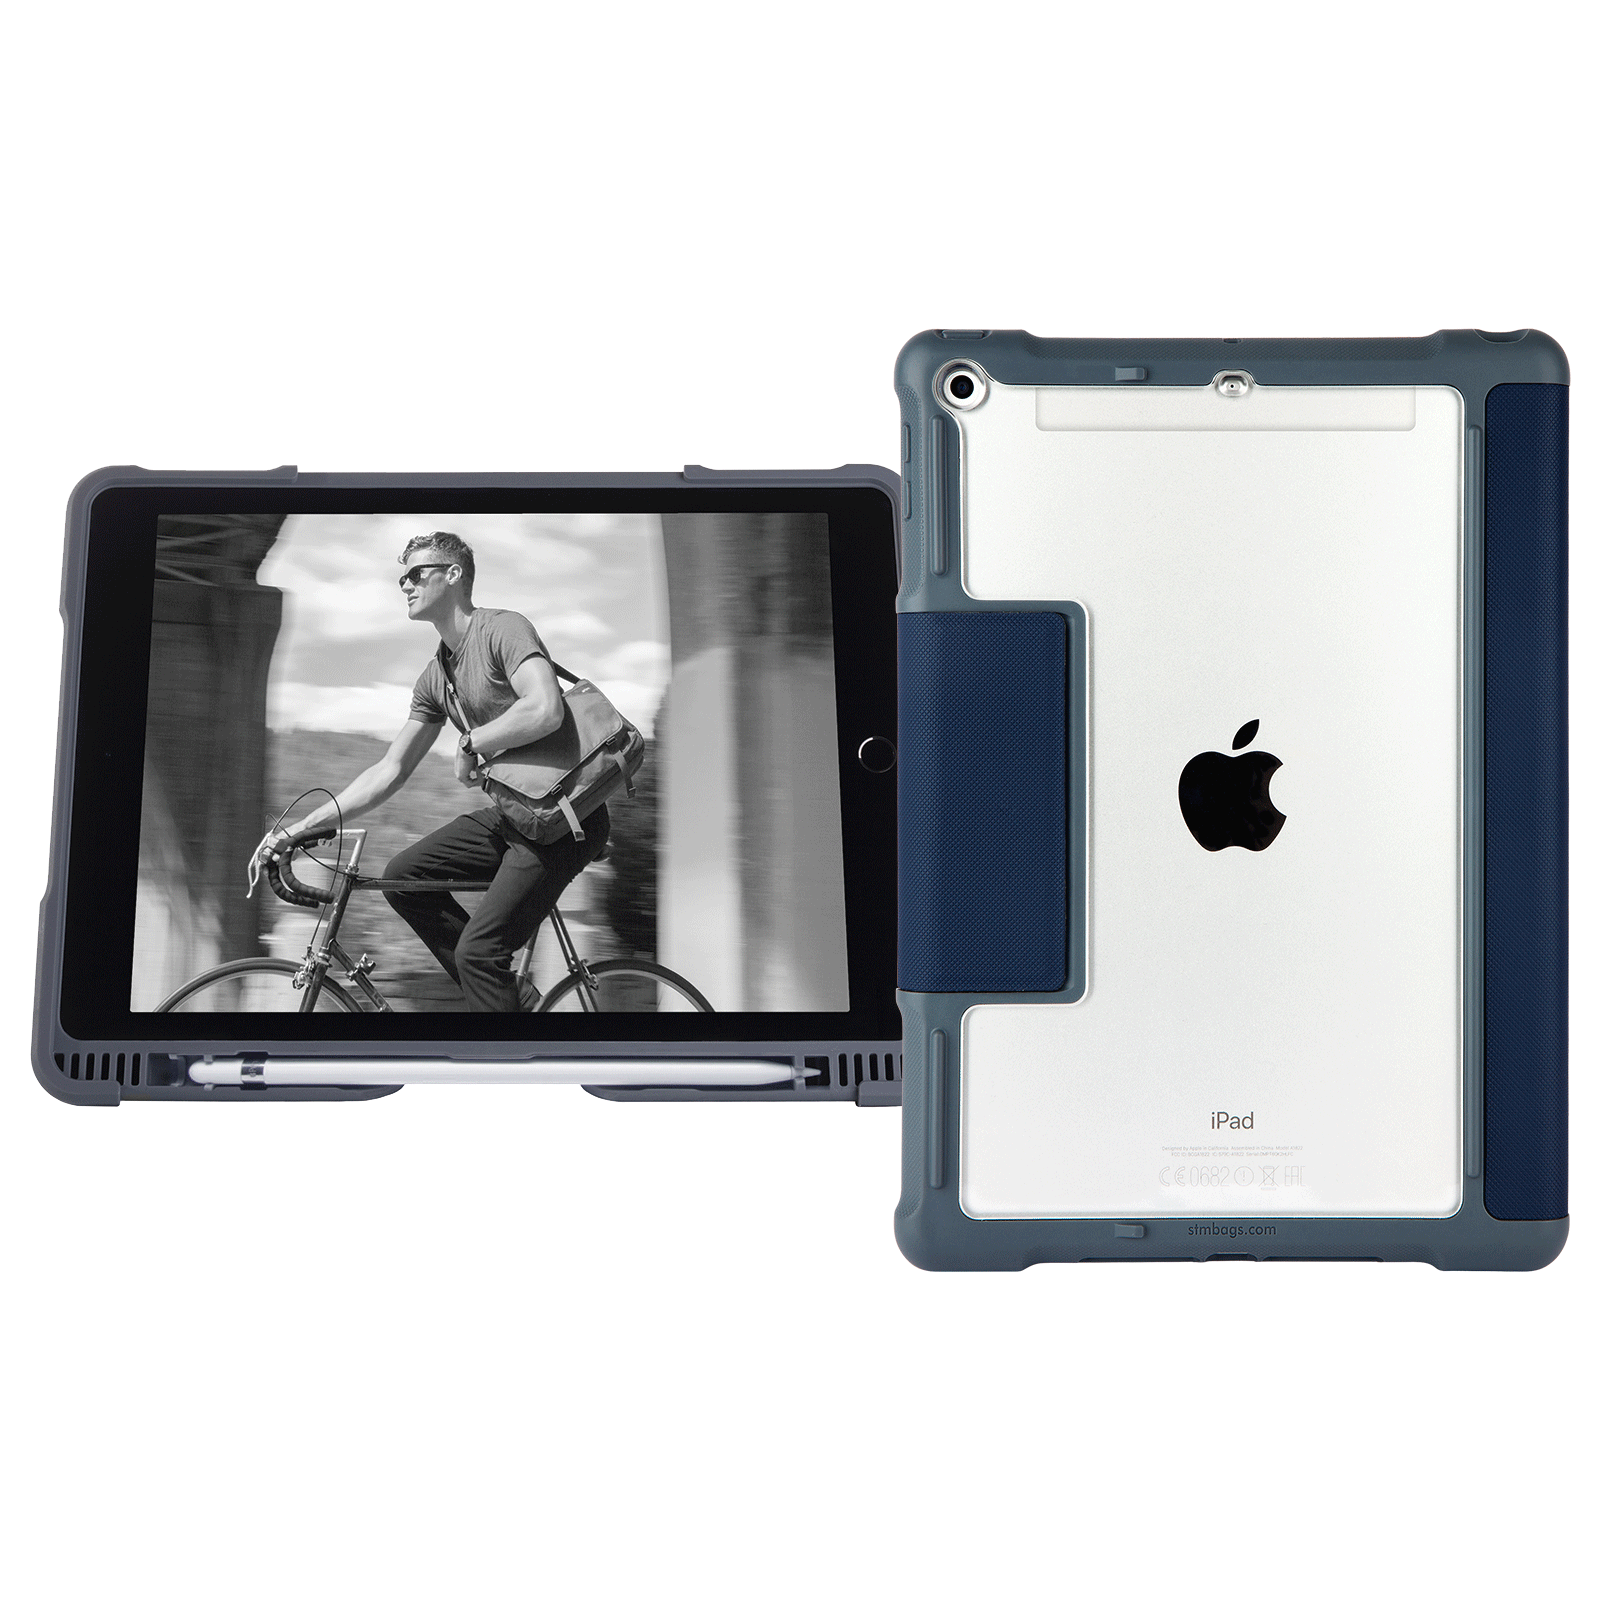 STM Dux Plus Polycarbonate, Rubberised, Polyurethane Flip Case For iPad 9.7 Inch 6th Gen (Instant On/Off Cover, STM-222-165JW-03, Midnight Blue)_1